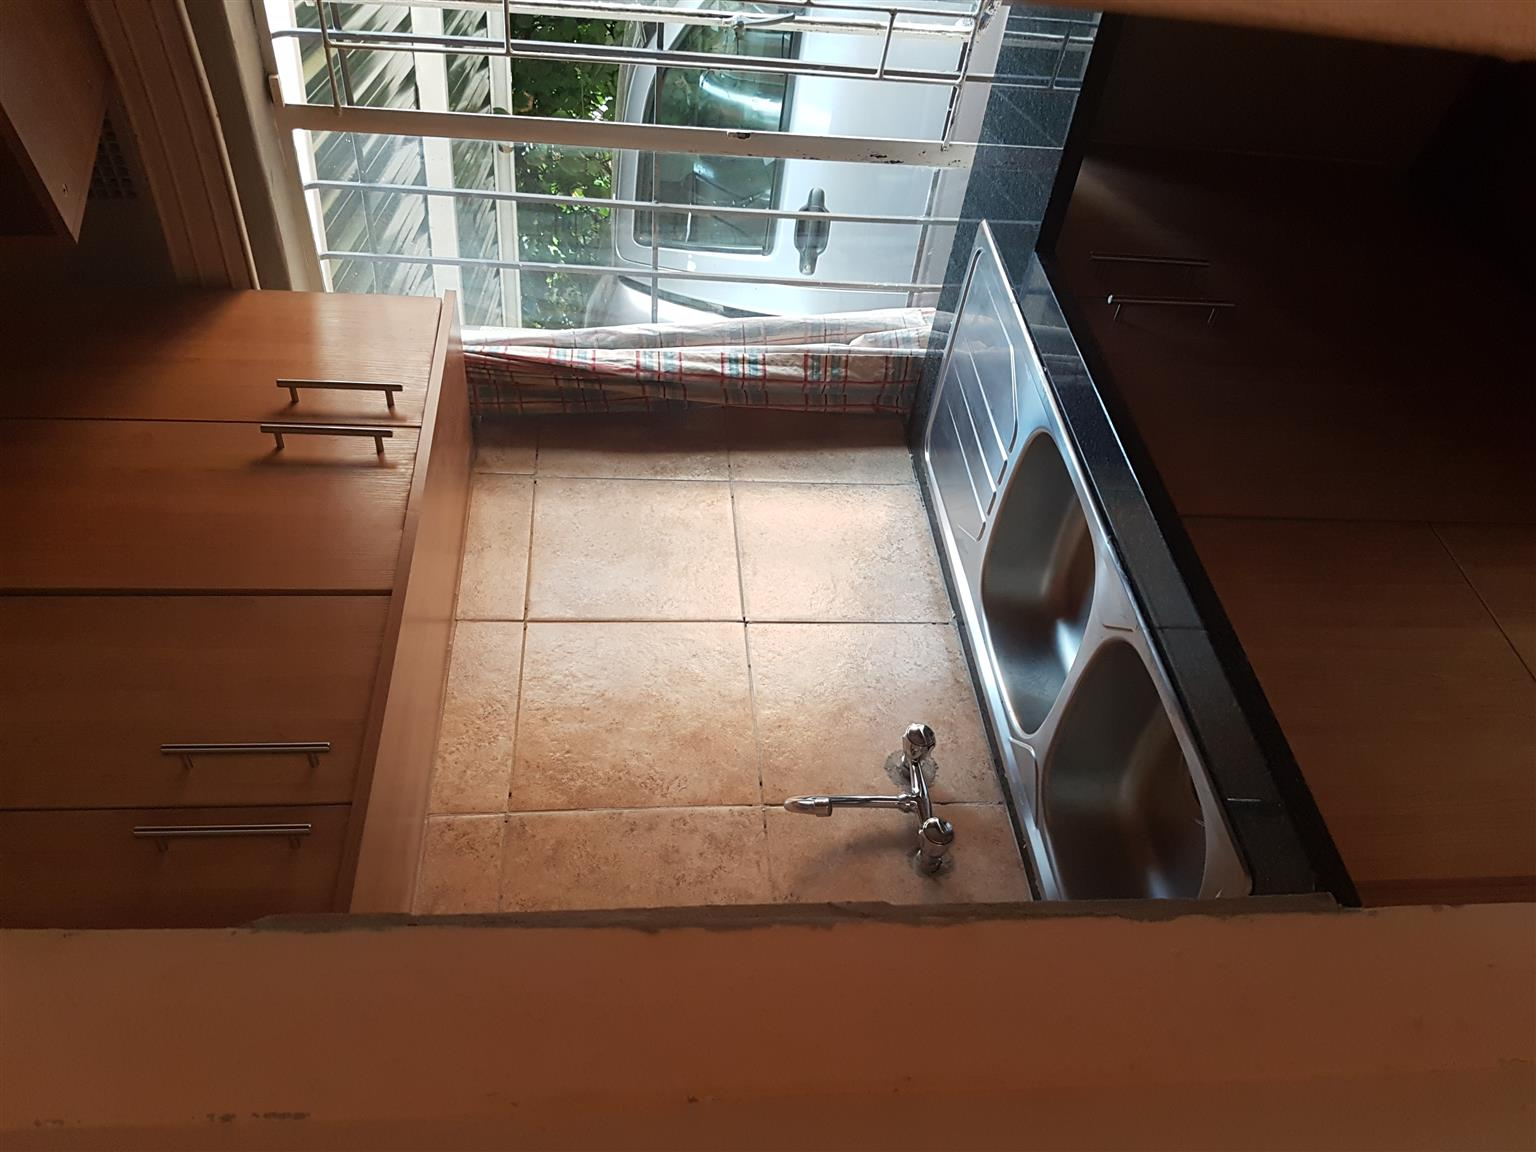 Rondavel to rent in Waverley, Pretoria, for 1 FEMALE student/worker